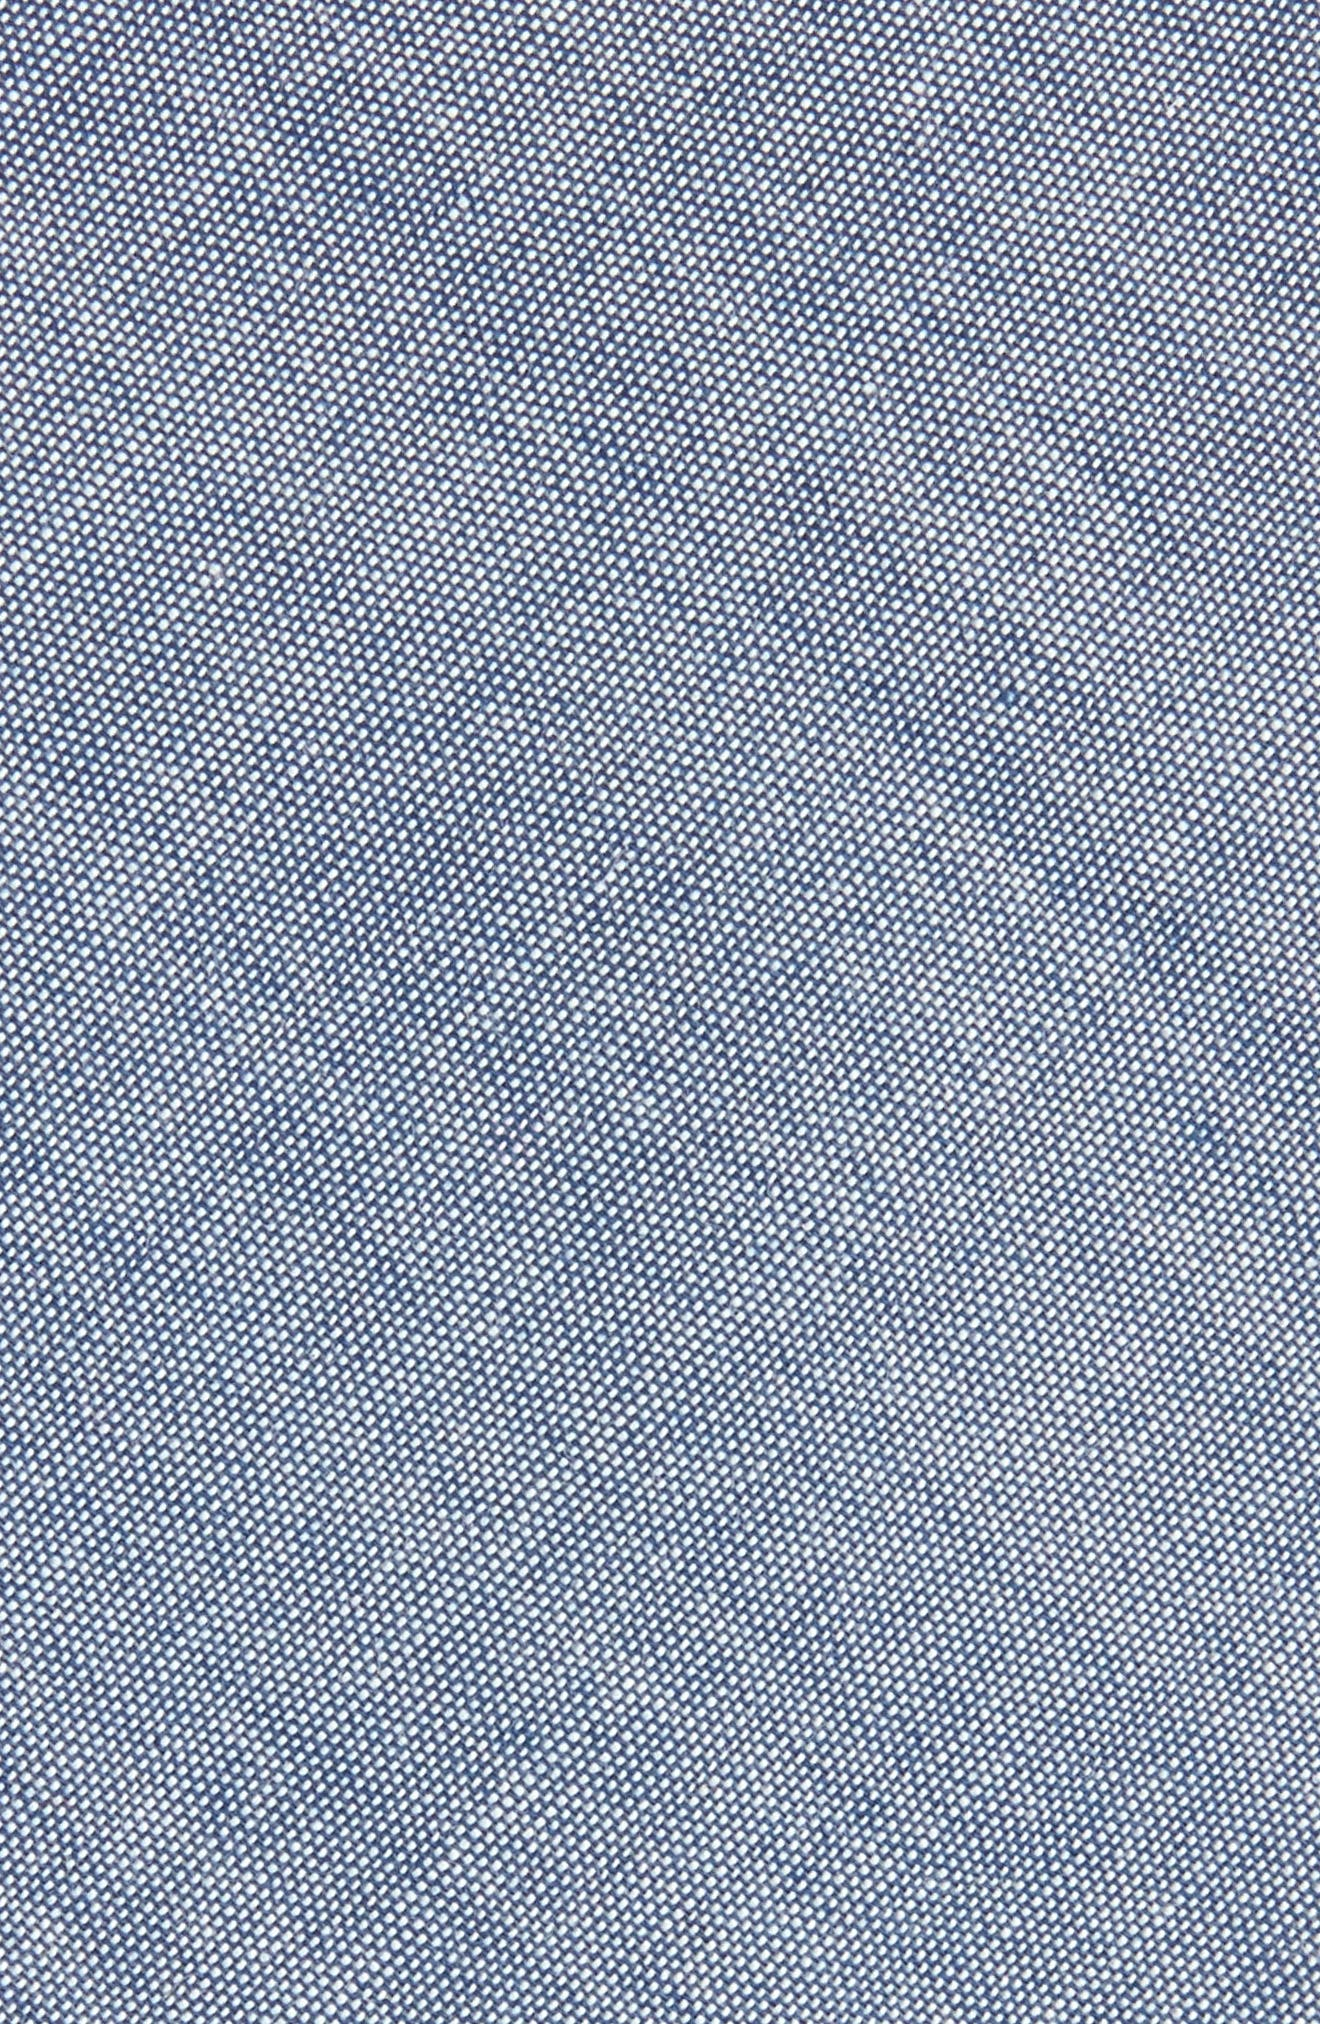 Alternate Image 2  - The Tie Bar Classic Chambray Cotton Tie